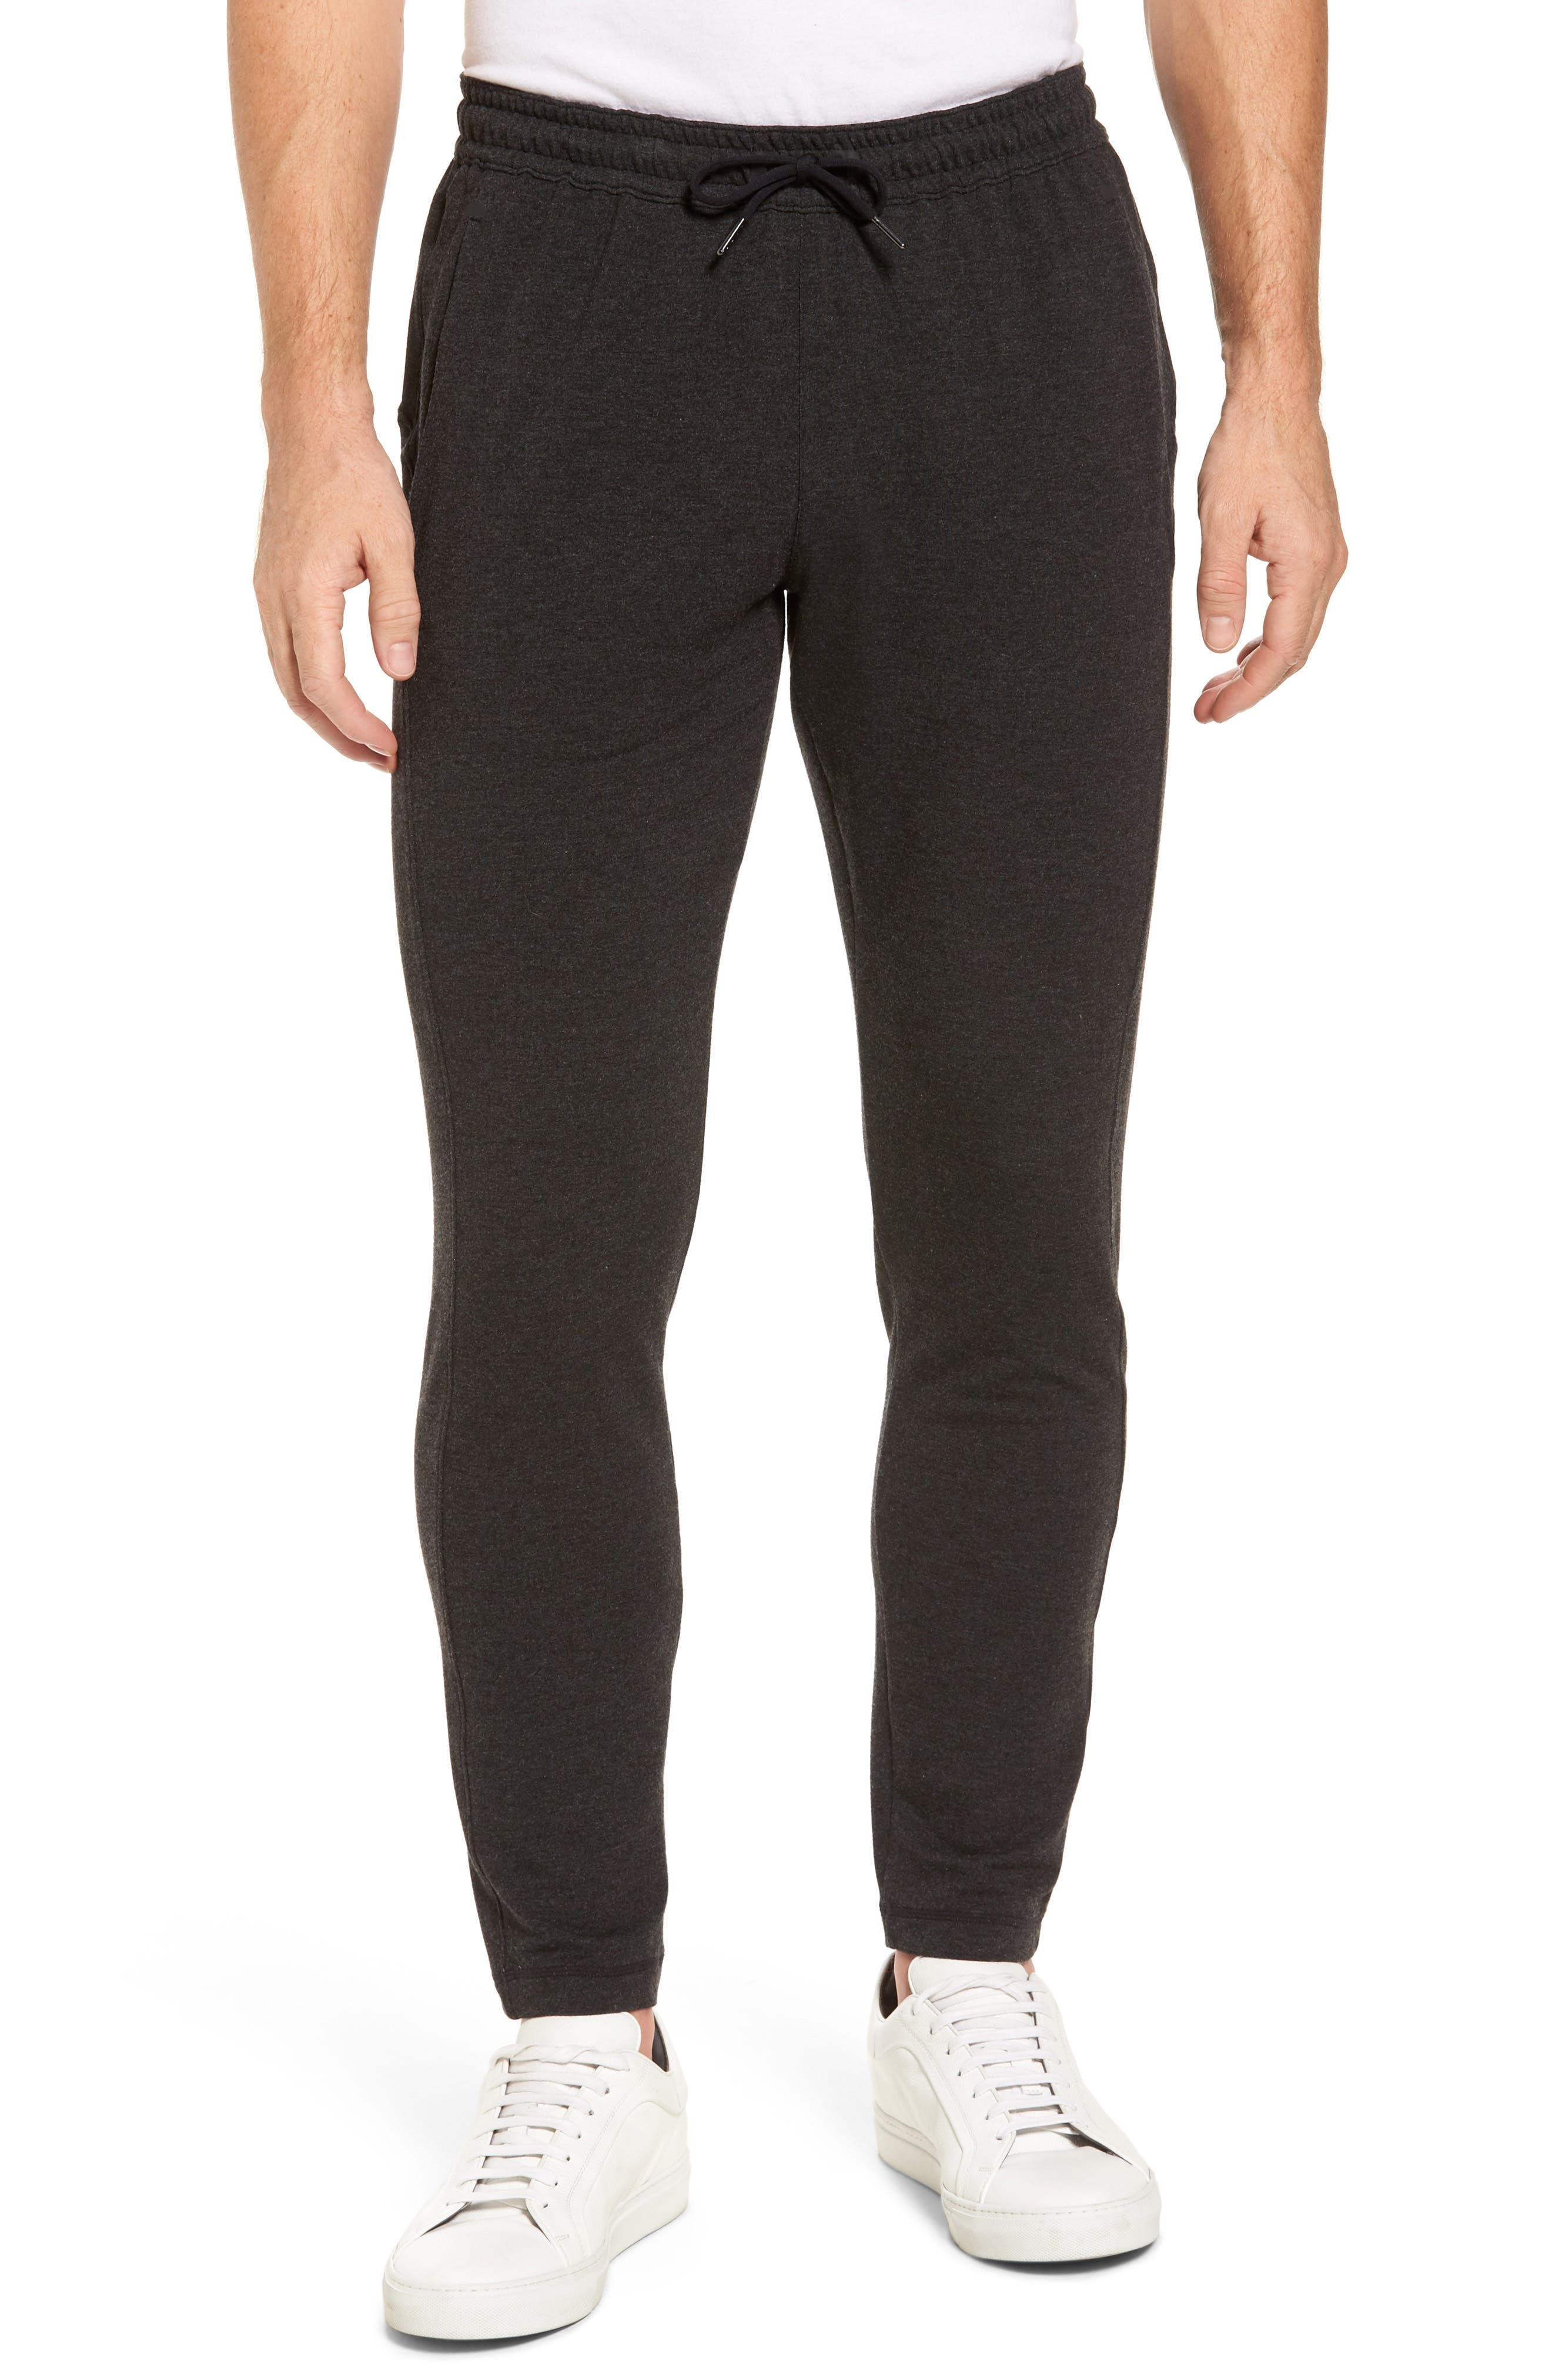 Alternate Image 1 Selected - Zella New Pyrite Tapered Fit Fleece Pants